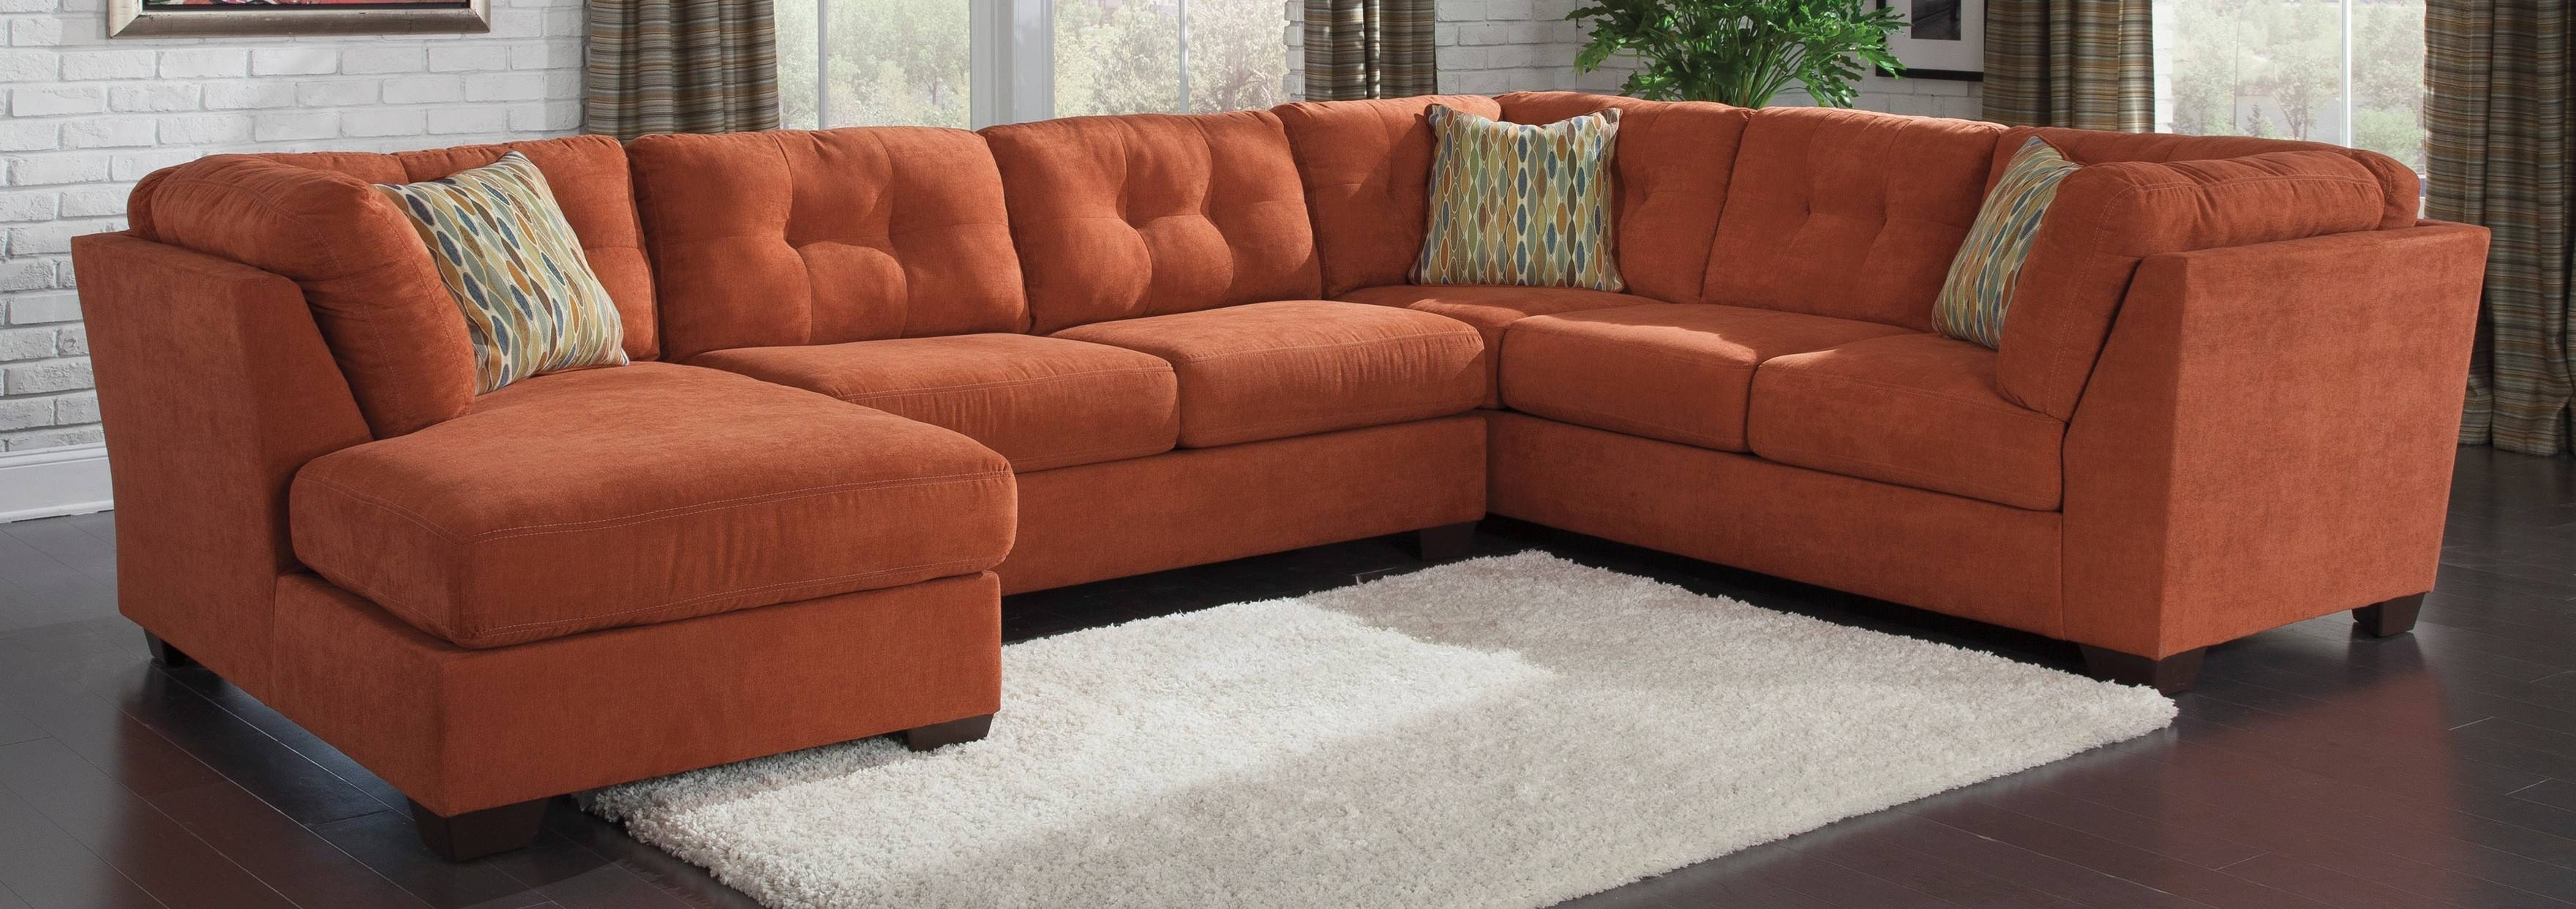 Sofas Center : Orange Sectional Sofa Edra Striking Photos Ideas throughout Orange Sectional Sofa (Image 30 of 30)